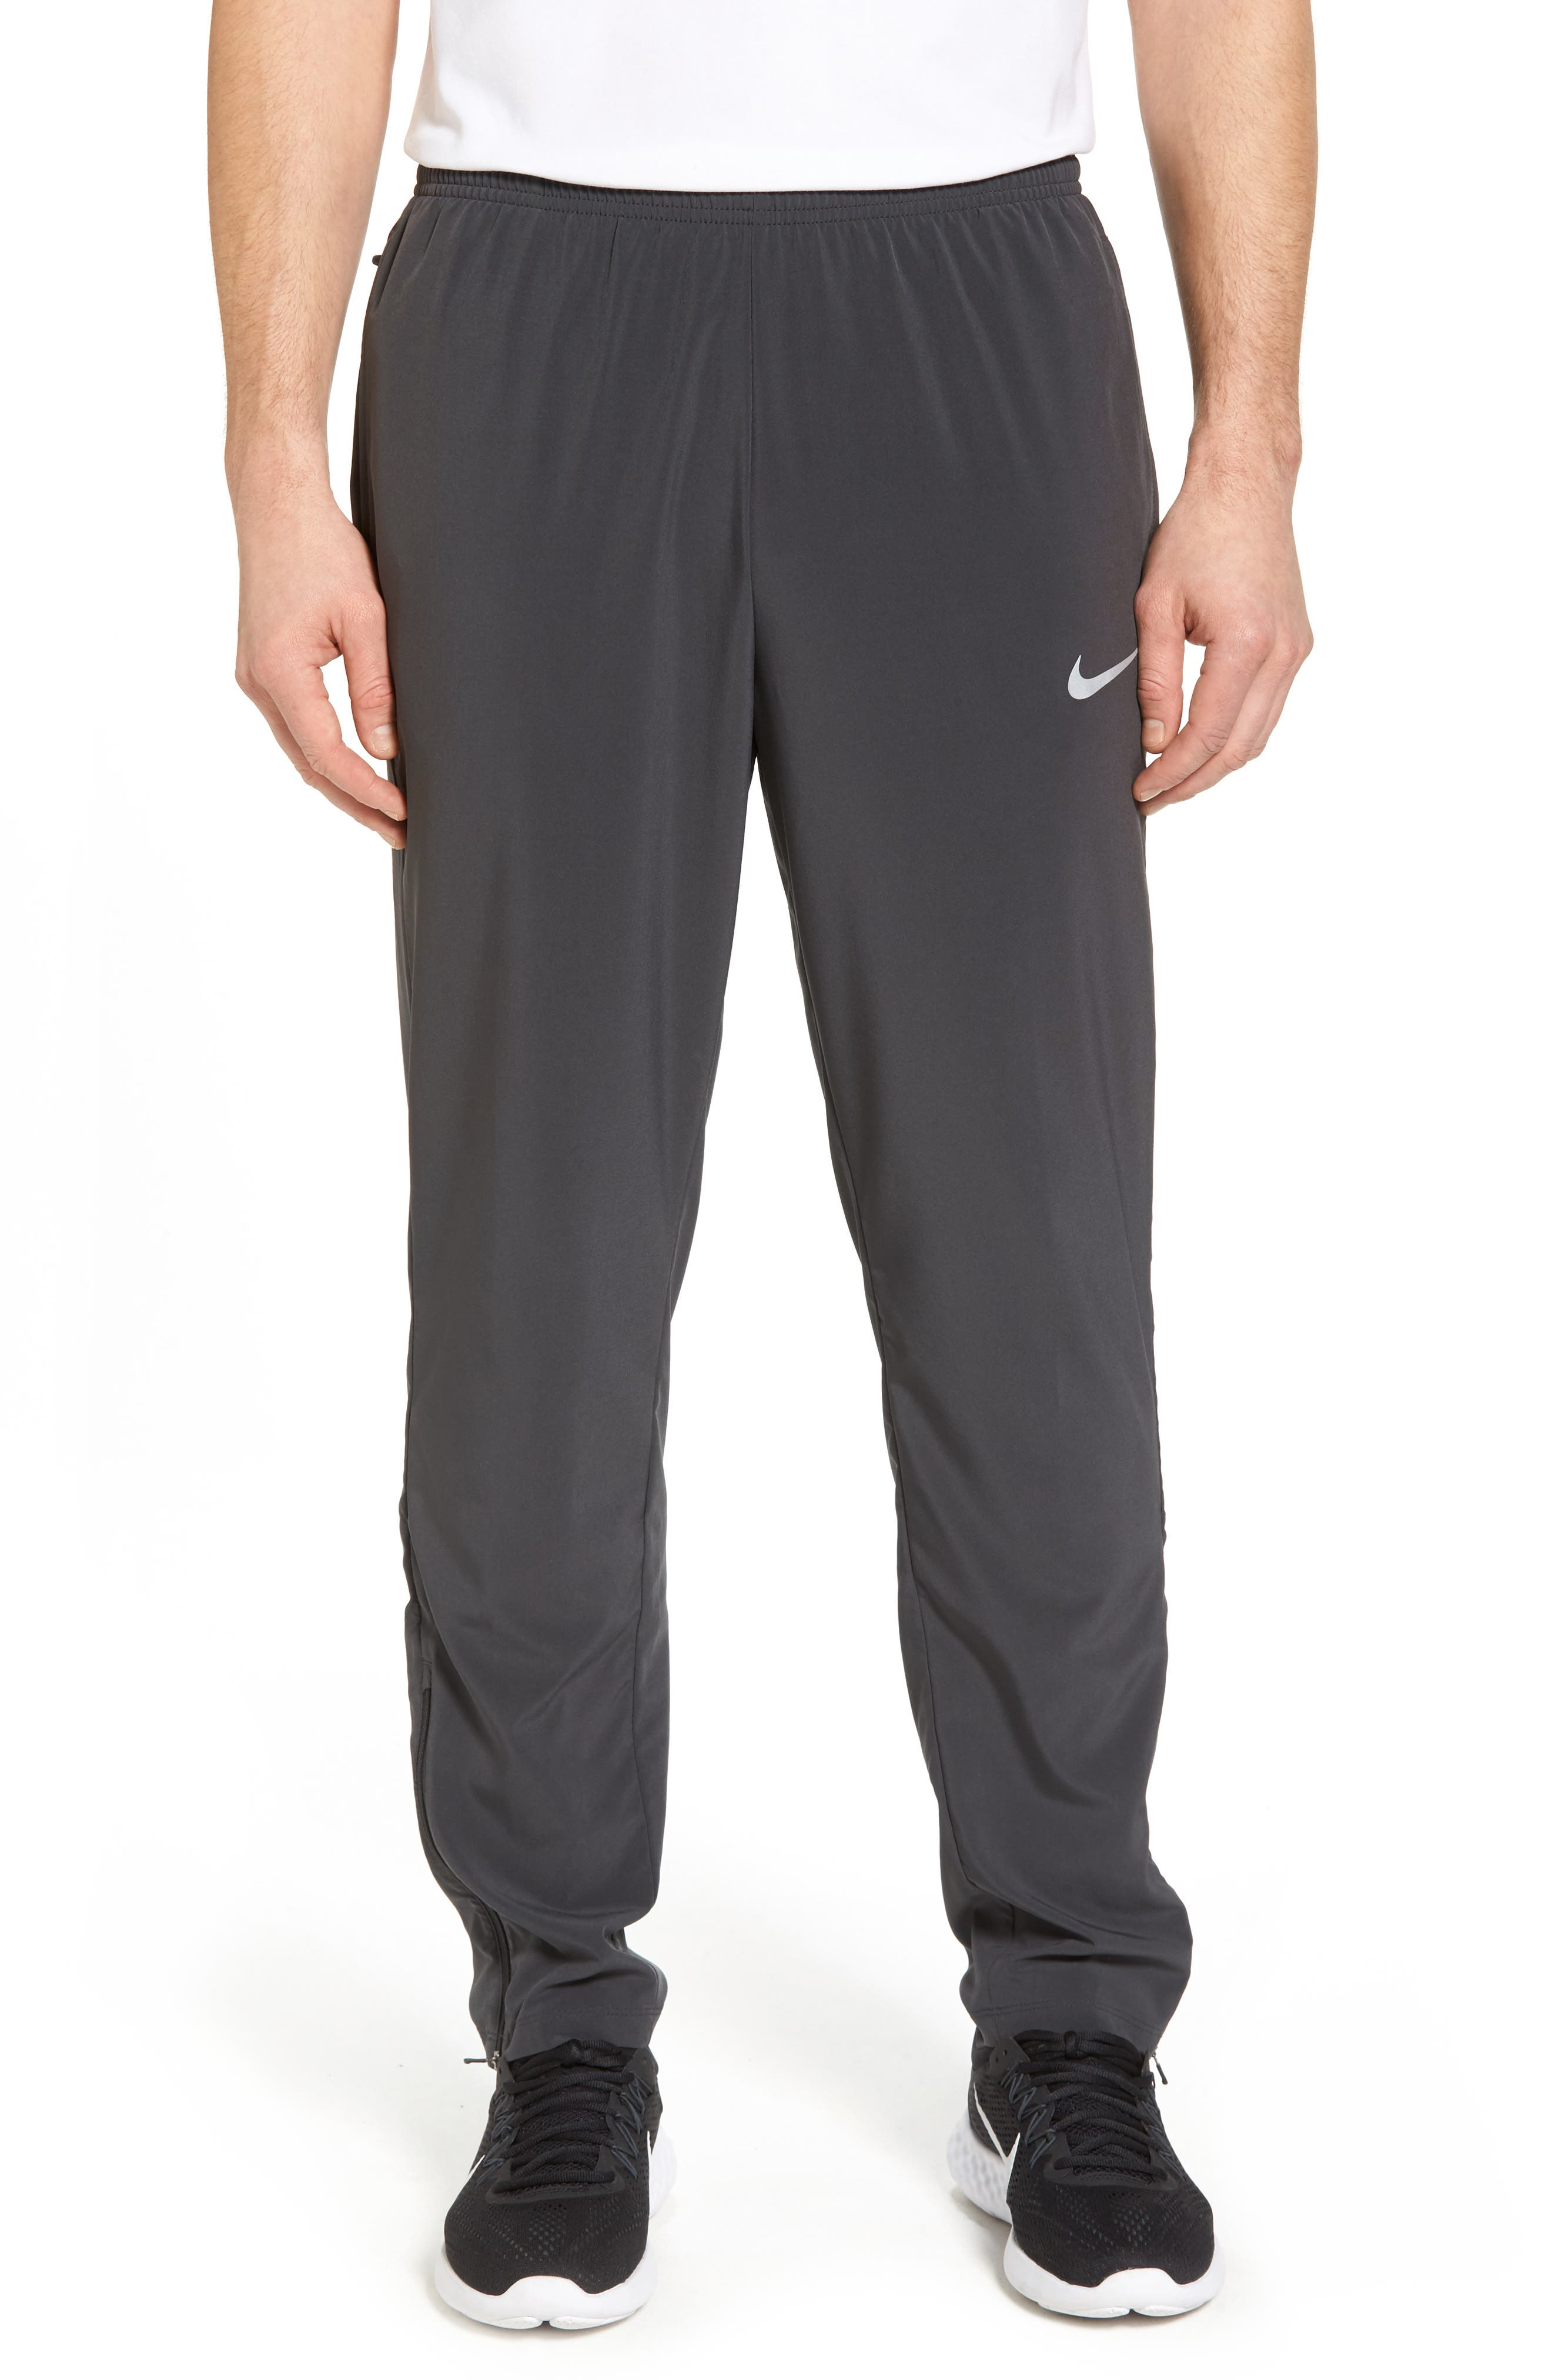 Flex Running Pants,                         Main,                         color, Anthracite